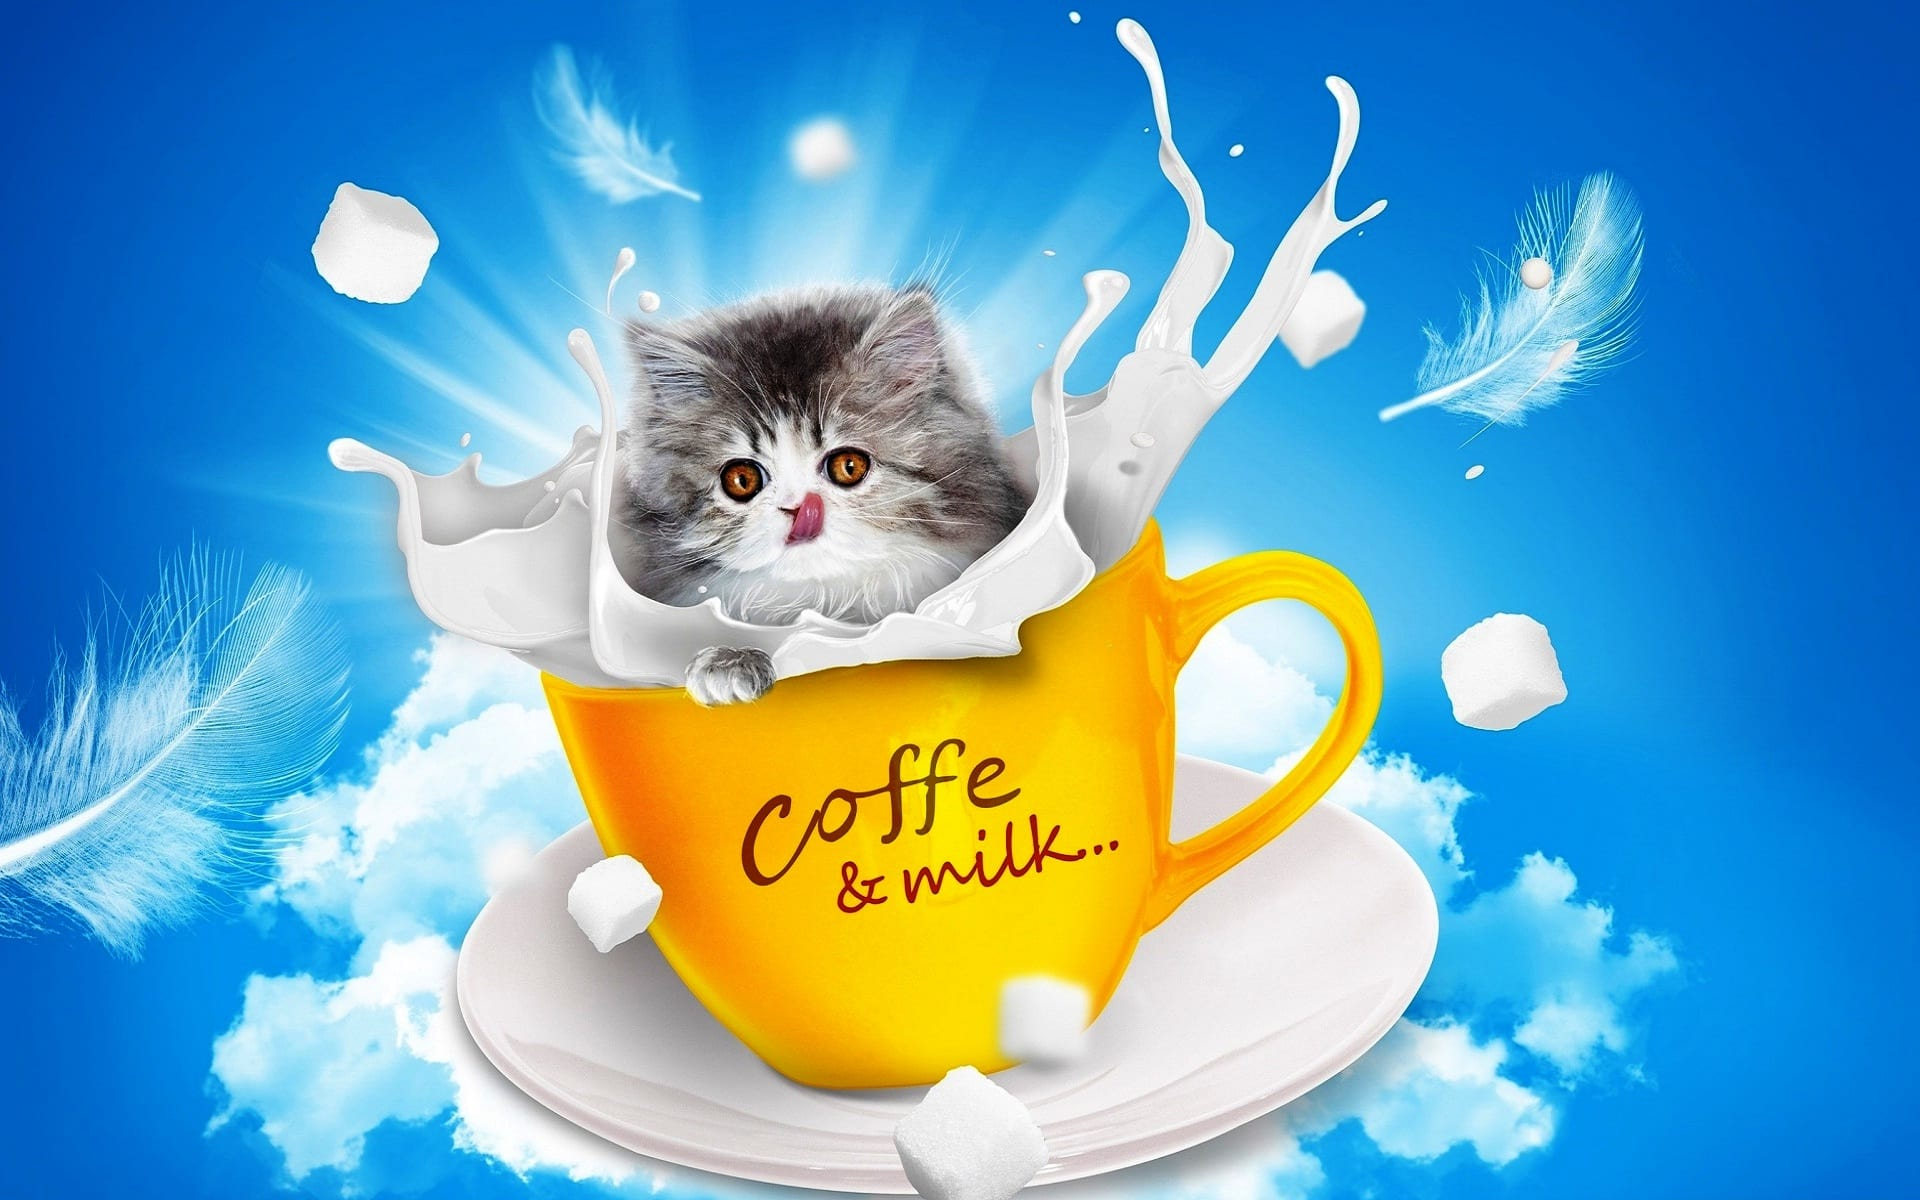 3052-Good-Morning-Coffee-Funny-Wallpapers-Download-Facebook-Whatsapp